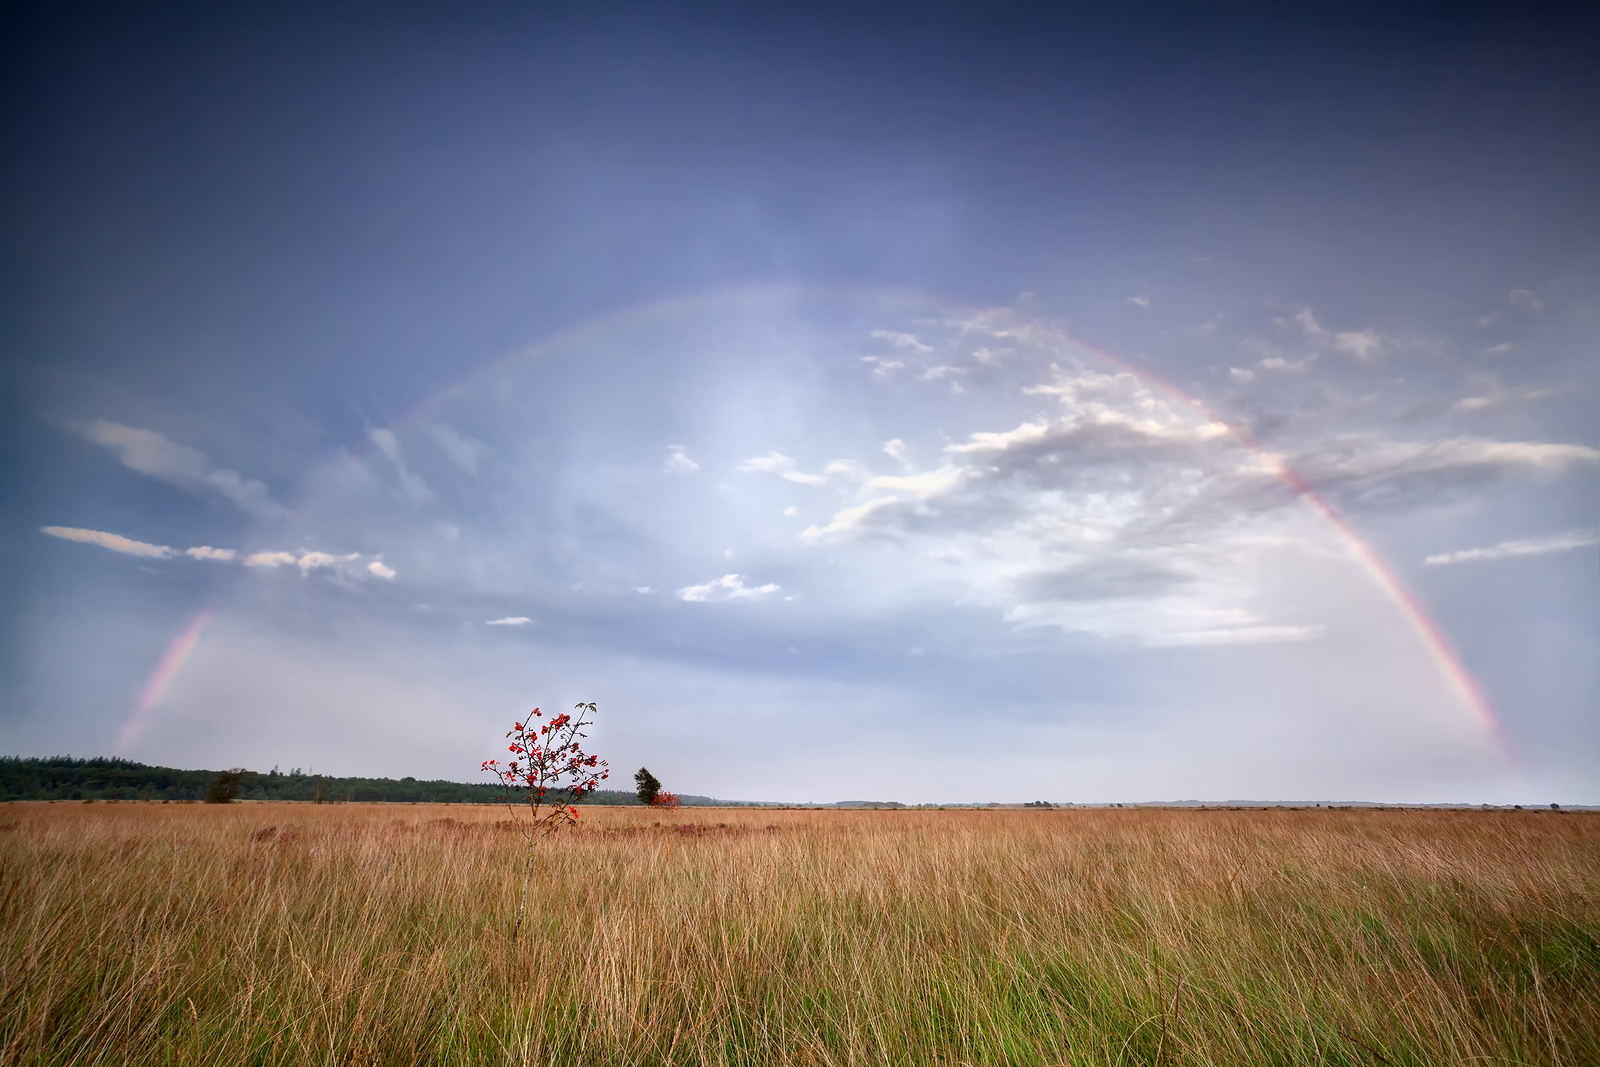 bigstock-Rainbow-Over-Rowan-Tree-After-51450871